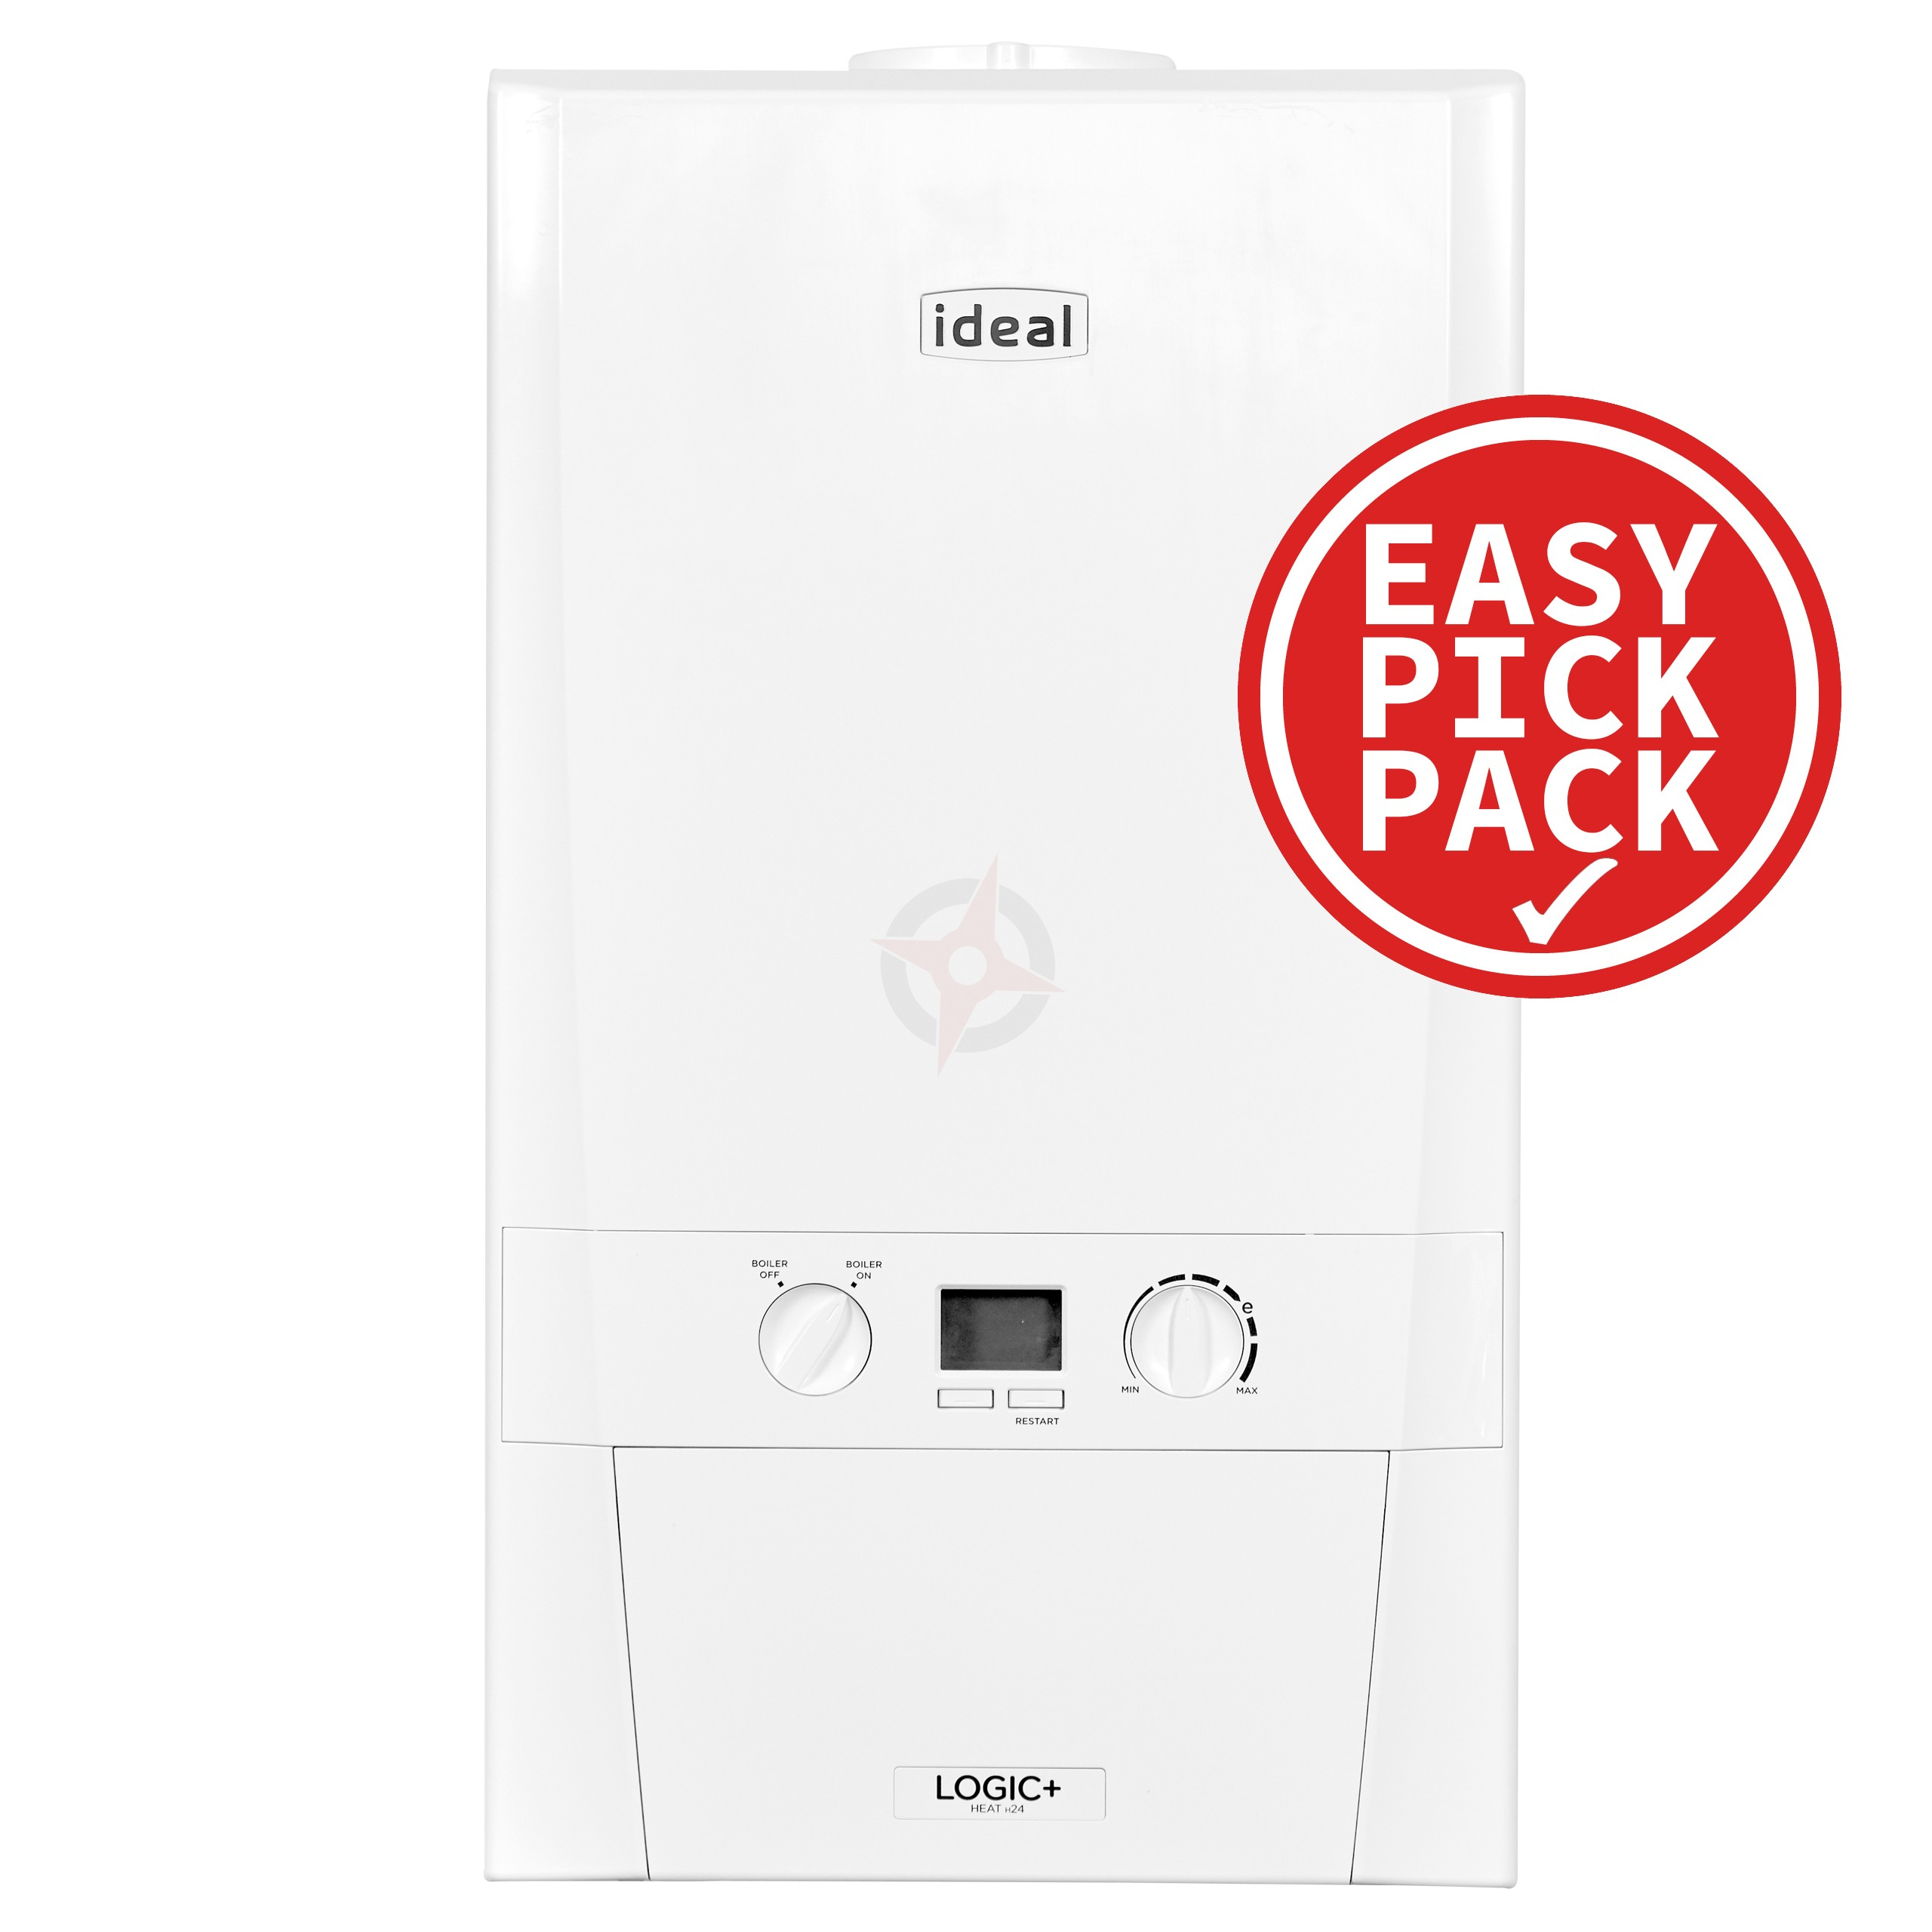 Ideal Logic+ (Plus model) 18 (ErP) Heat Boiler Easy Pick Pack